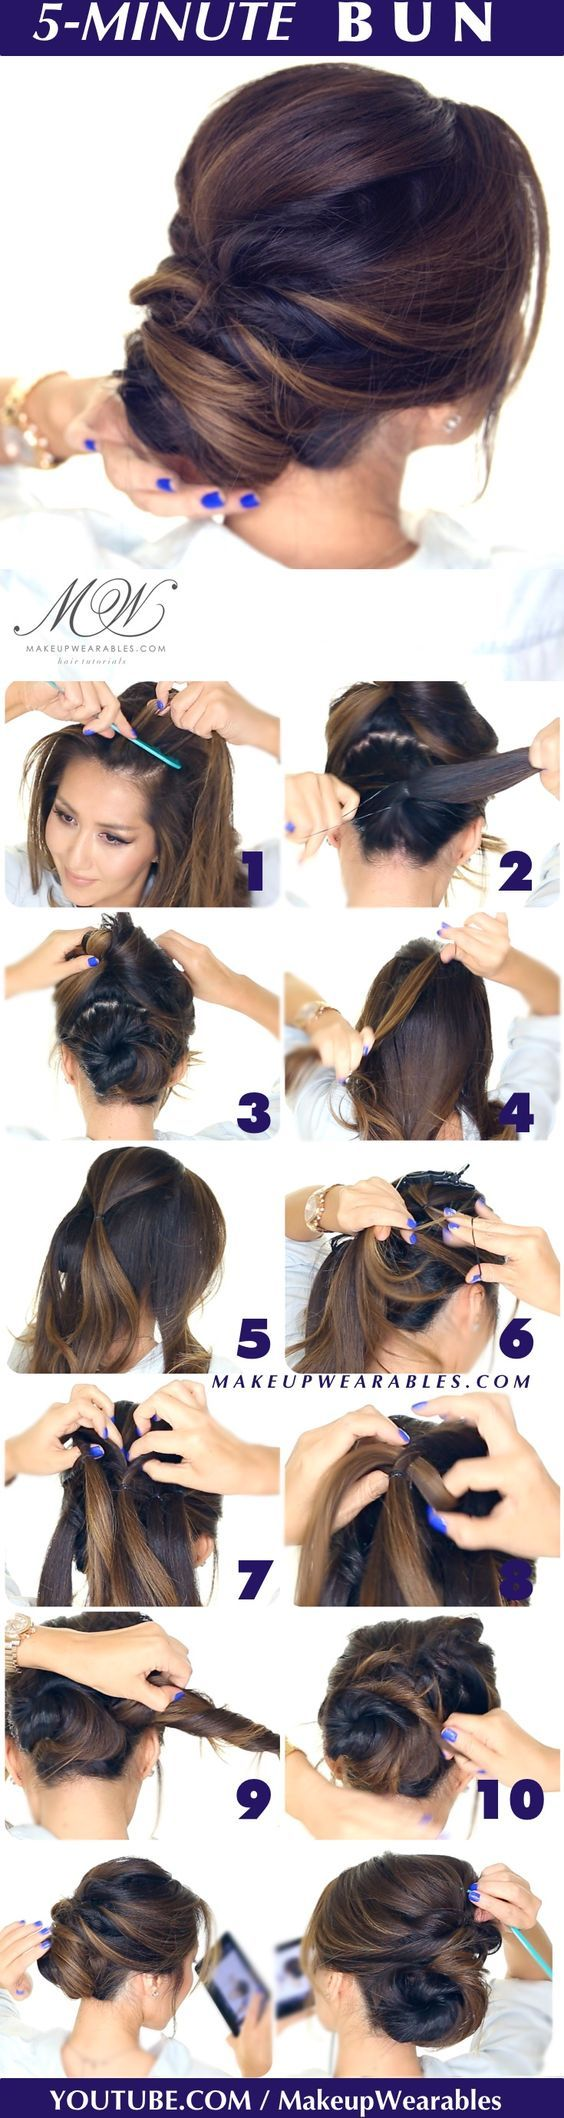 hair tutorial - easy romantic bun hairstyle - Elegant twisted bun hairstyles for homecoming prom wedding: